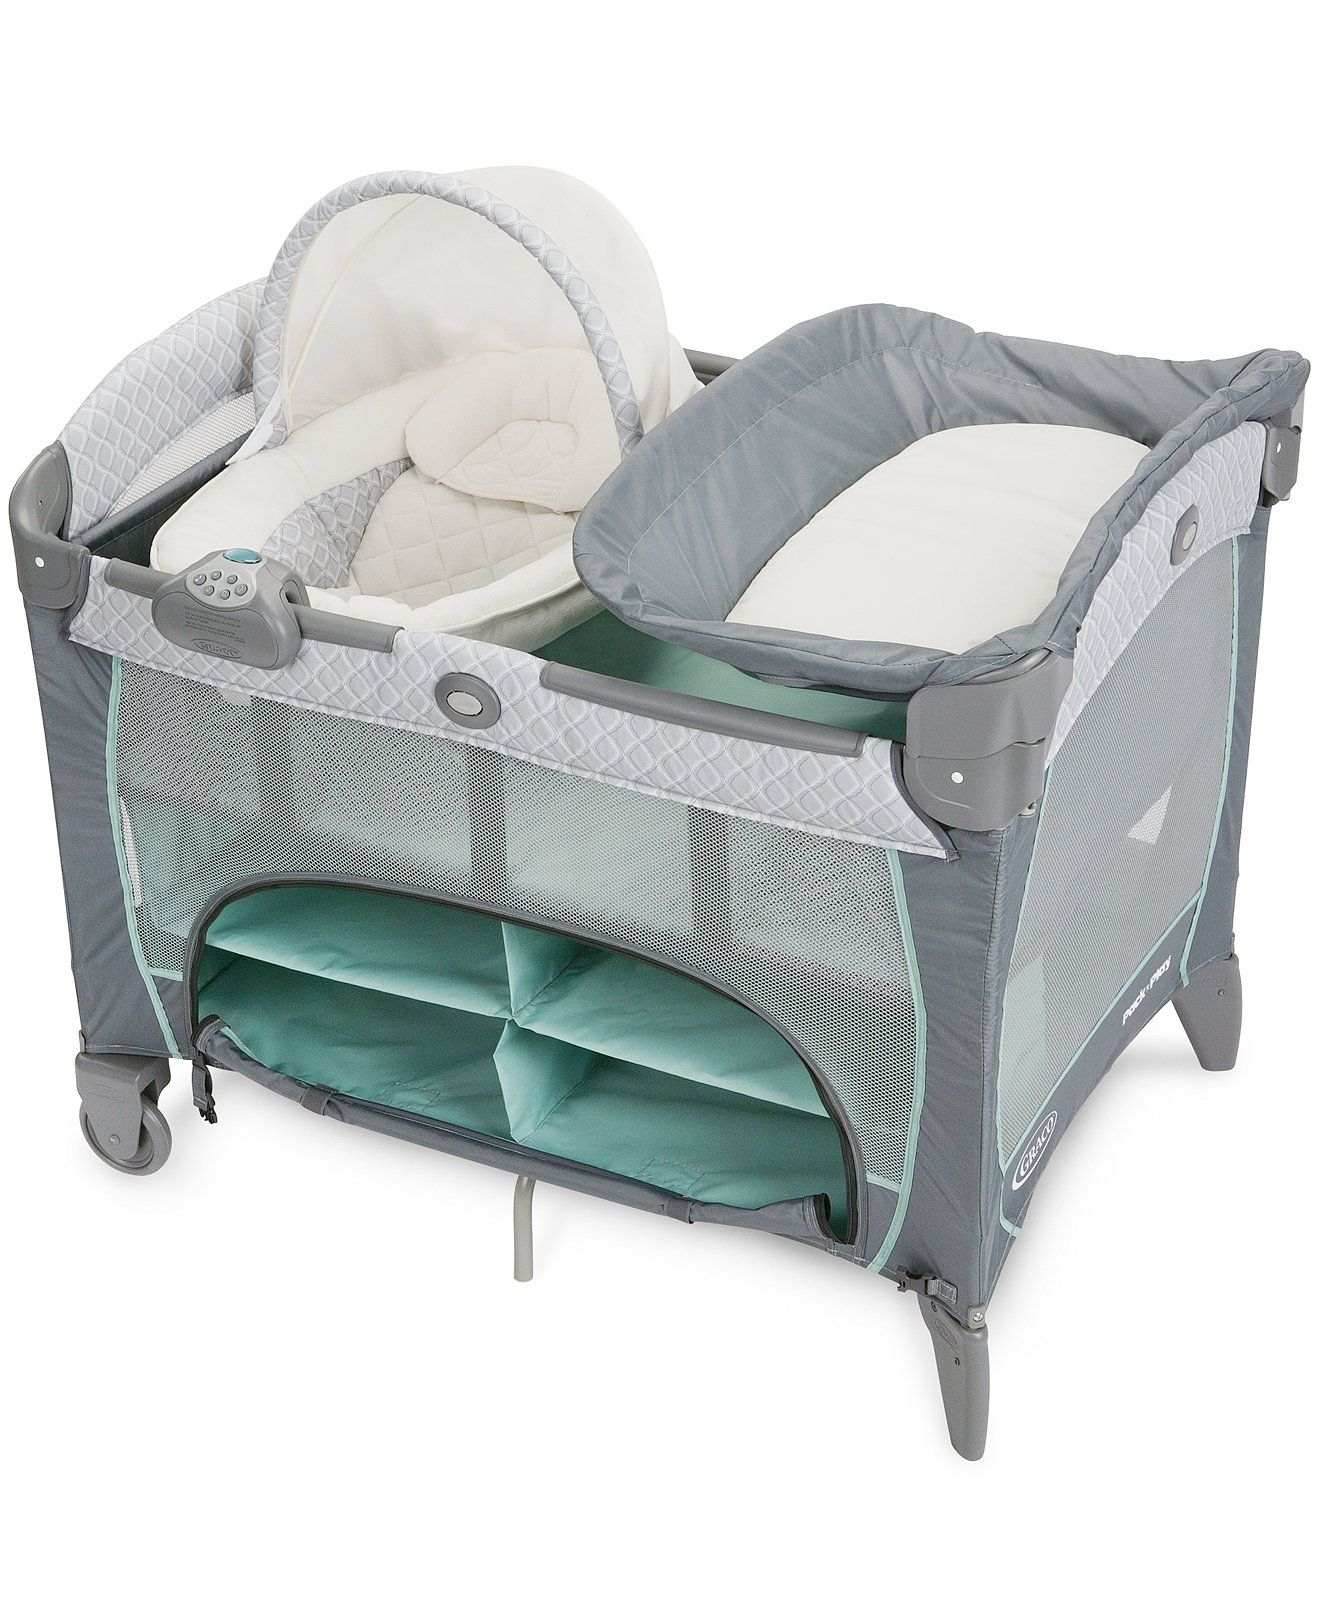 Graco Pack n Play Playard with Newborn Napper DLX